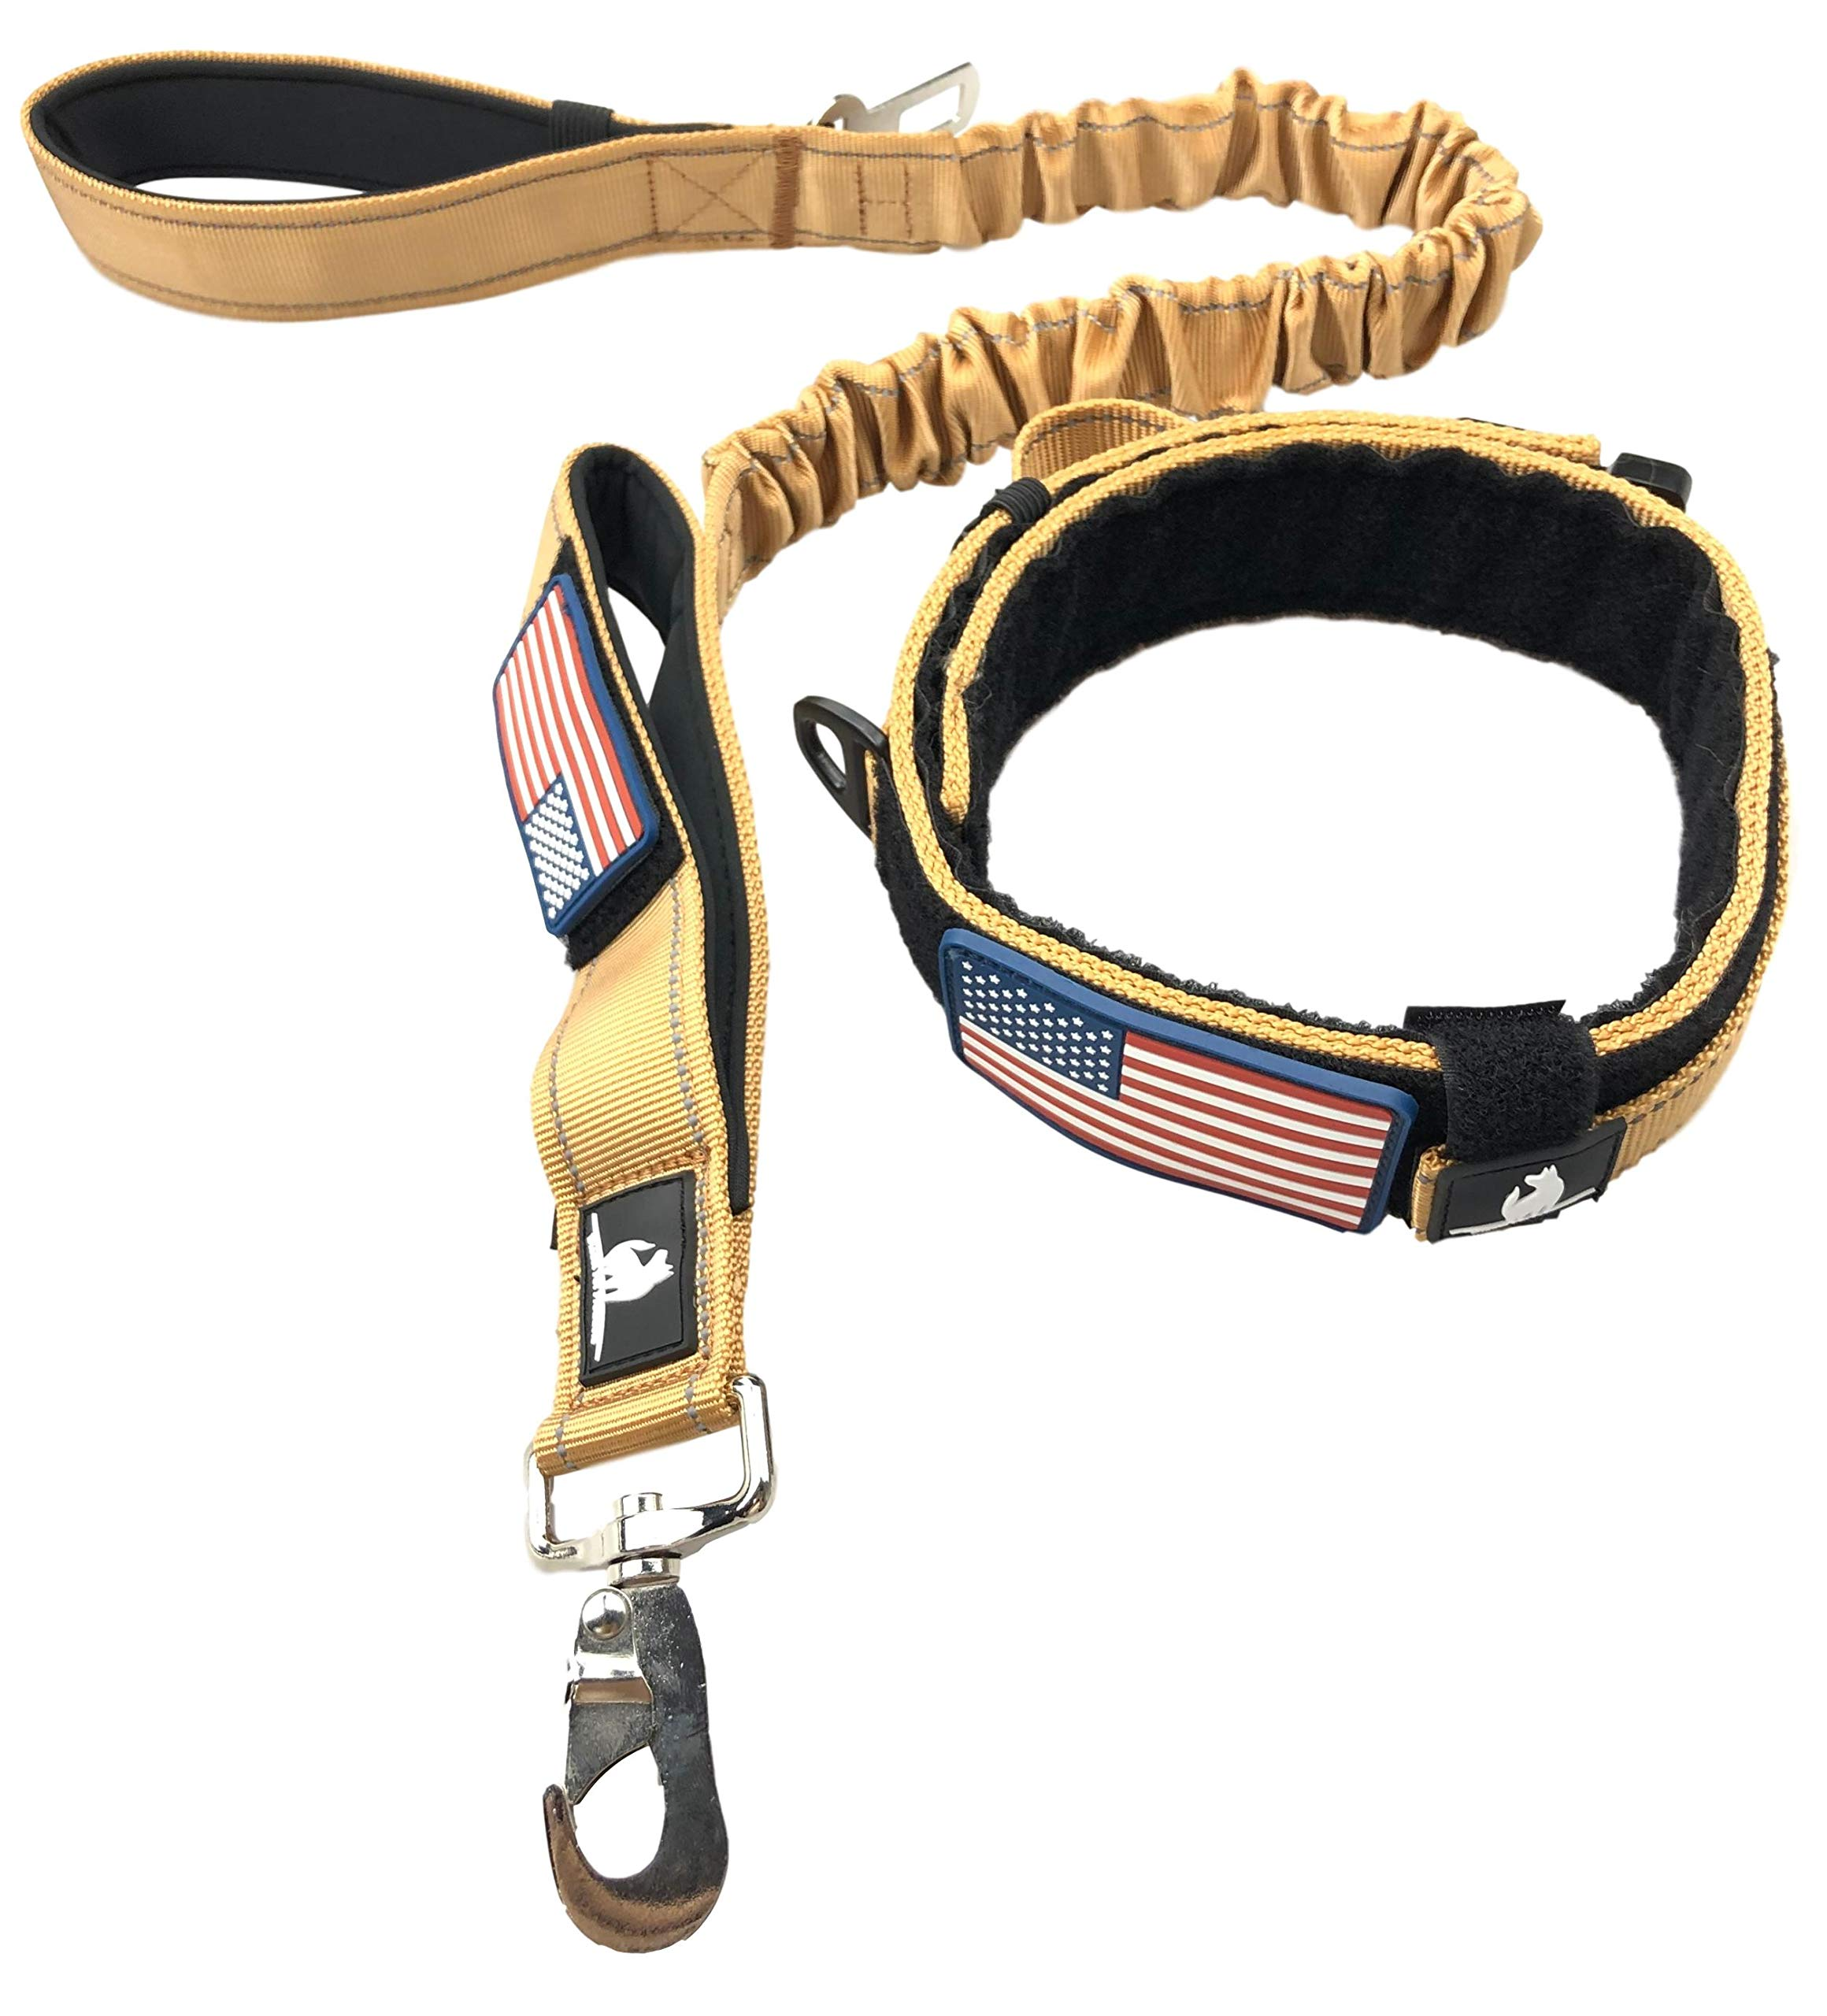 TACTICAL DOG COLLAR BUNGEE LEASH SET - 2'' INCH WIDE EXTRA LARGE HEAVY DUTY THICK K9 DOGS COLLARS HANDLE MILITARY METAL BUCKLE & 1.5'' WIDTH LEASH BOTH WITH USA FLAG PATCH (TAN, LEASH & COLLAR) by Diezel Pet Products